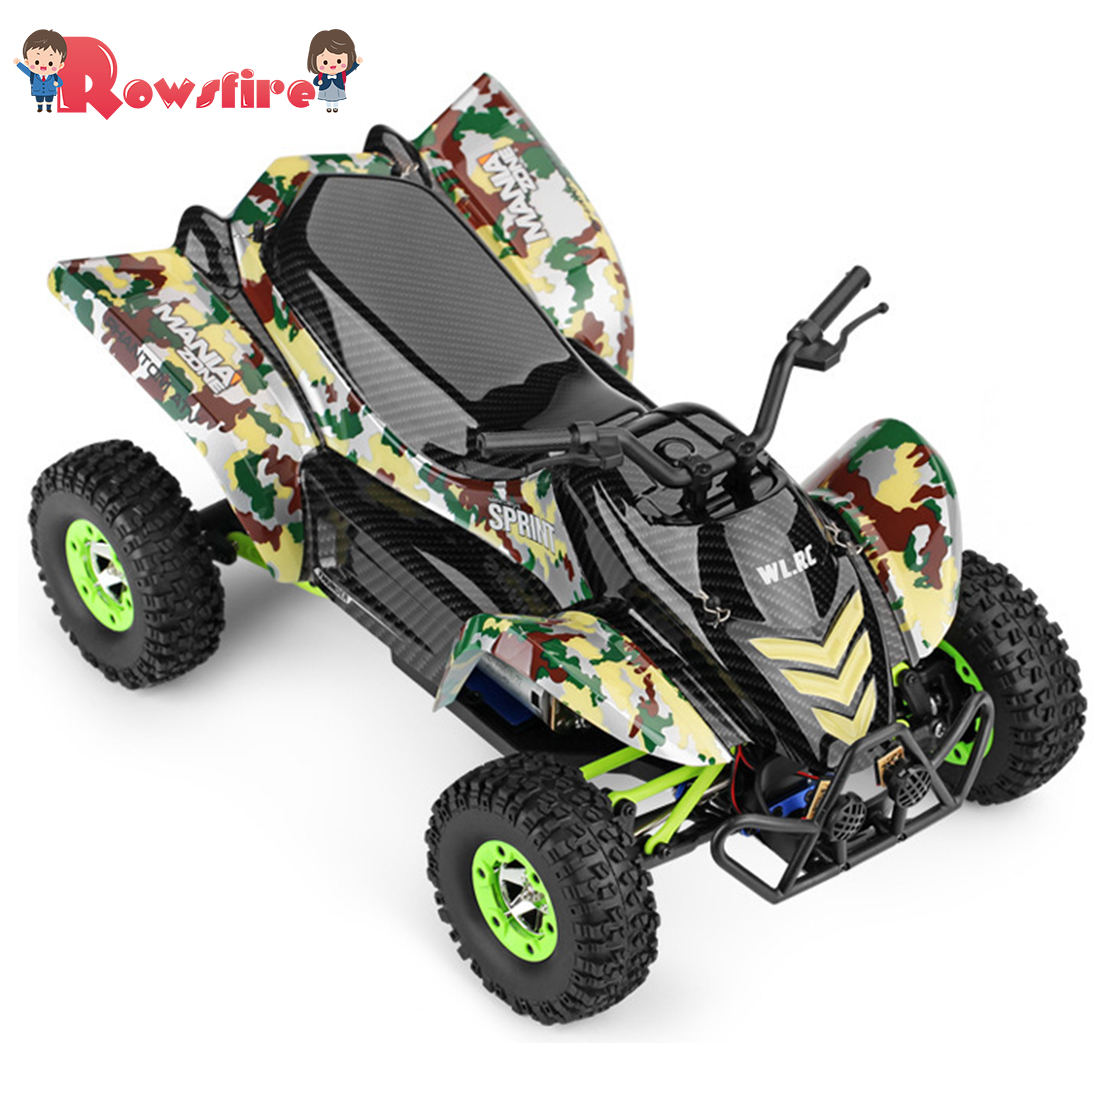 Rowsfire Wltoys Rc Cars 2.4g 4wd 50km/h Electric Brushed Off-road Motorcycle Led Lights Rtr 1 Battery Remote Control Toys Hot